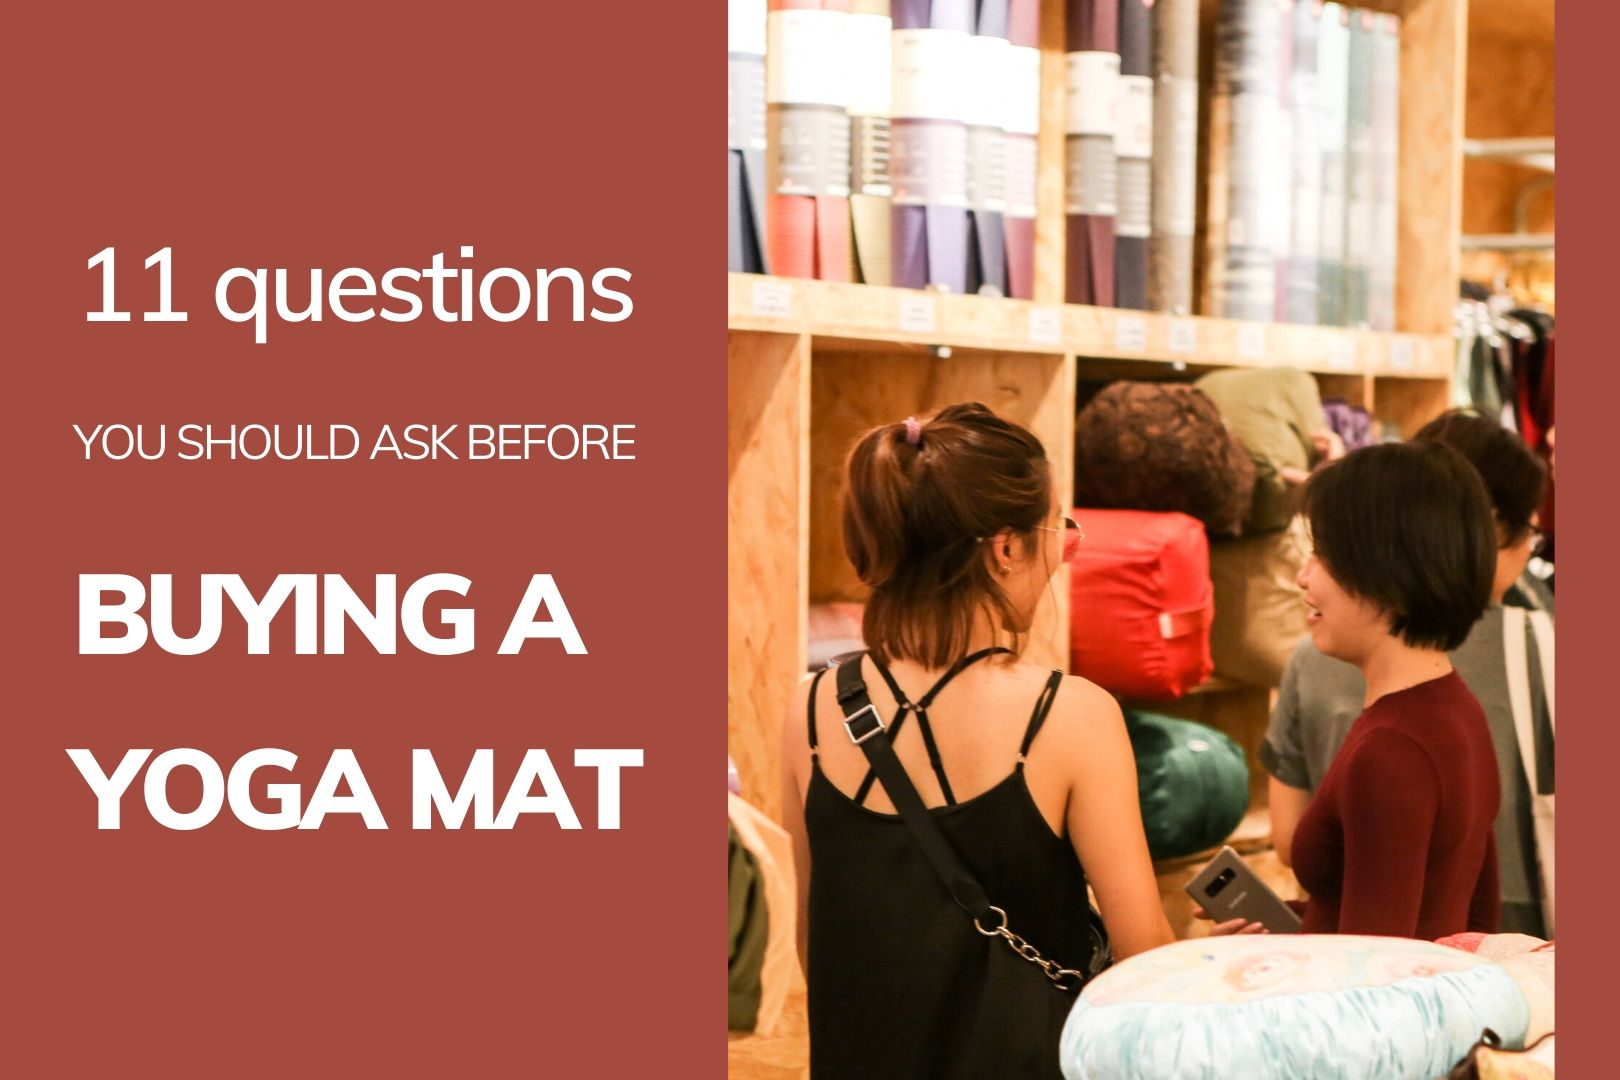 11 questions before buying yoga mat